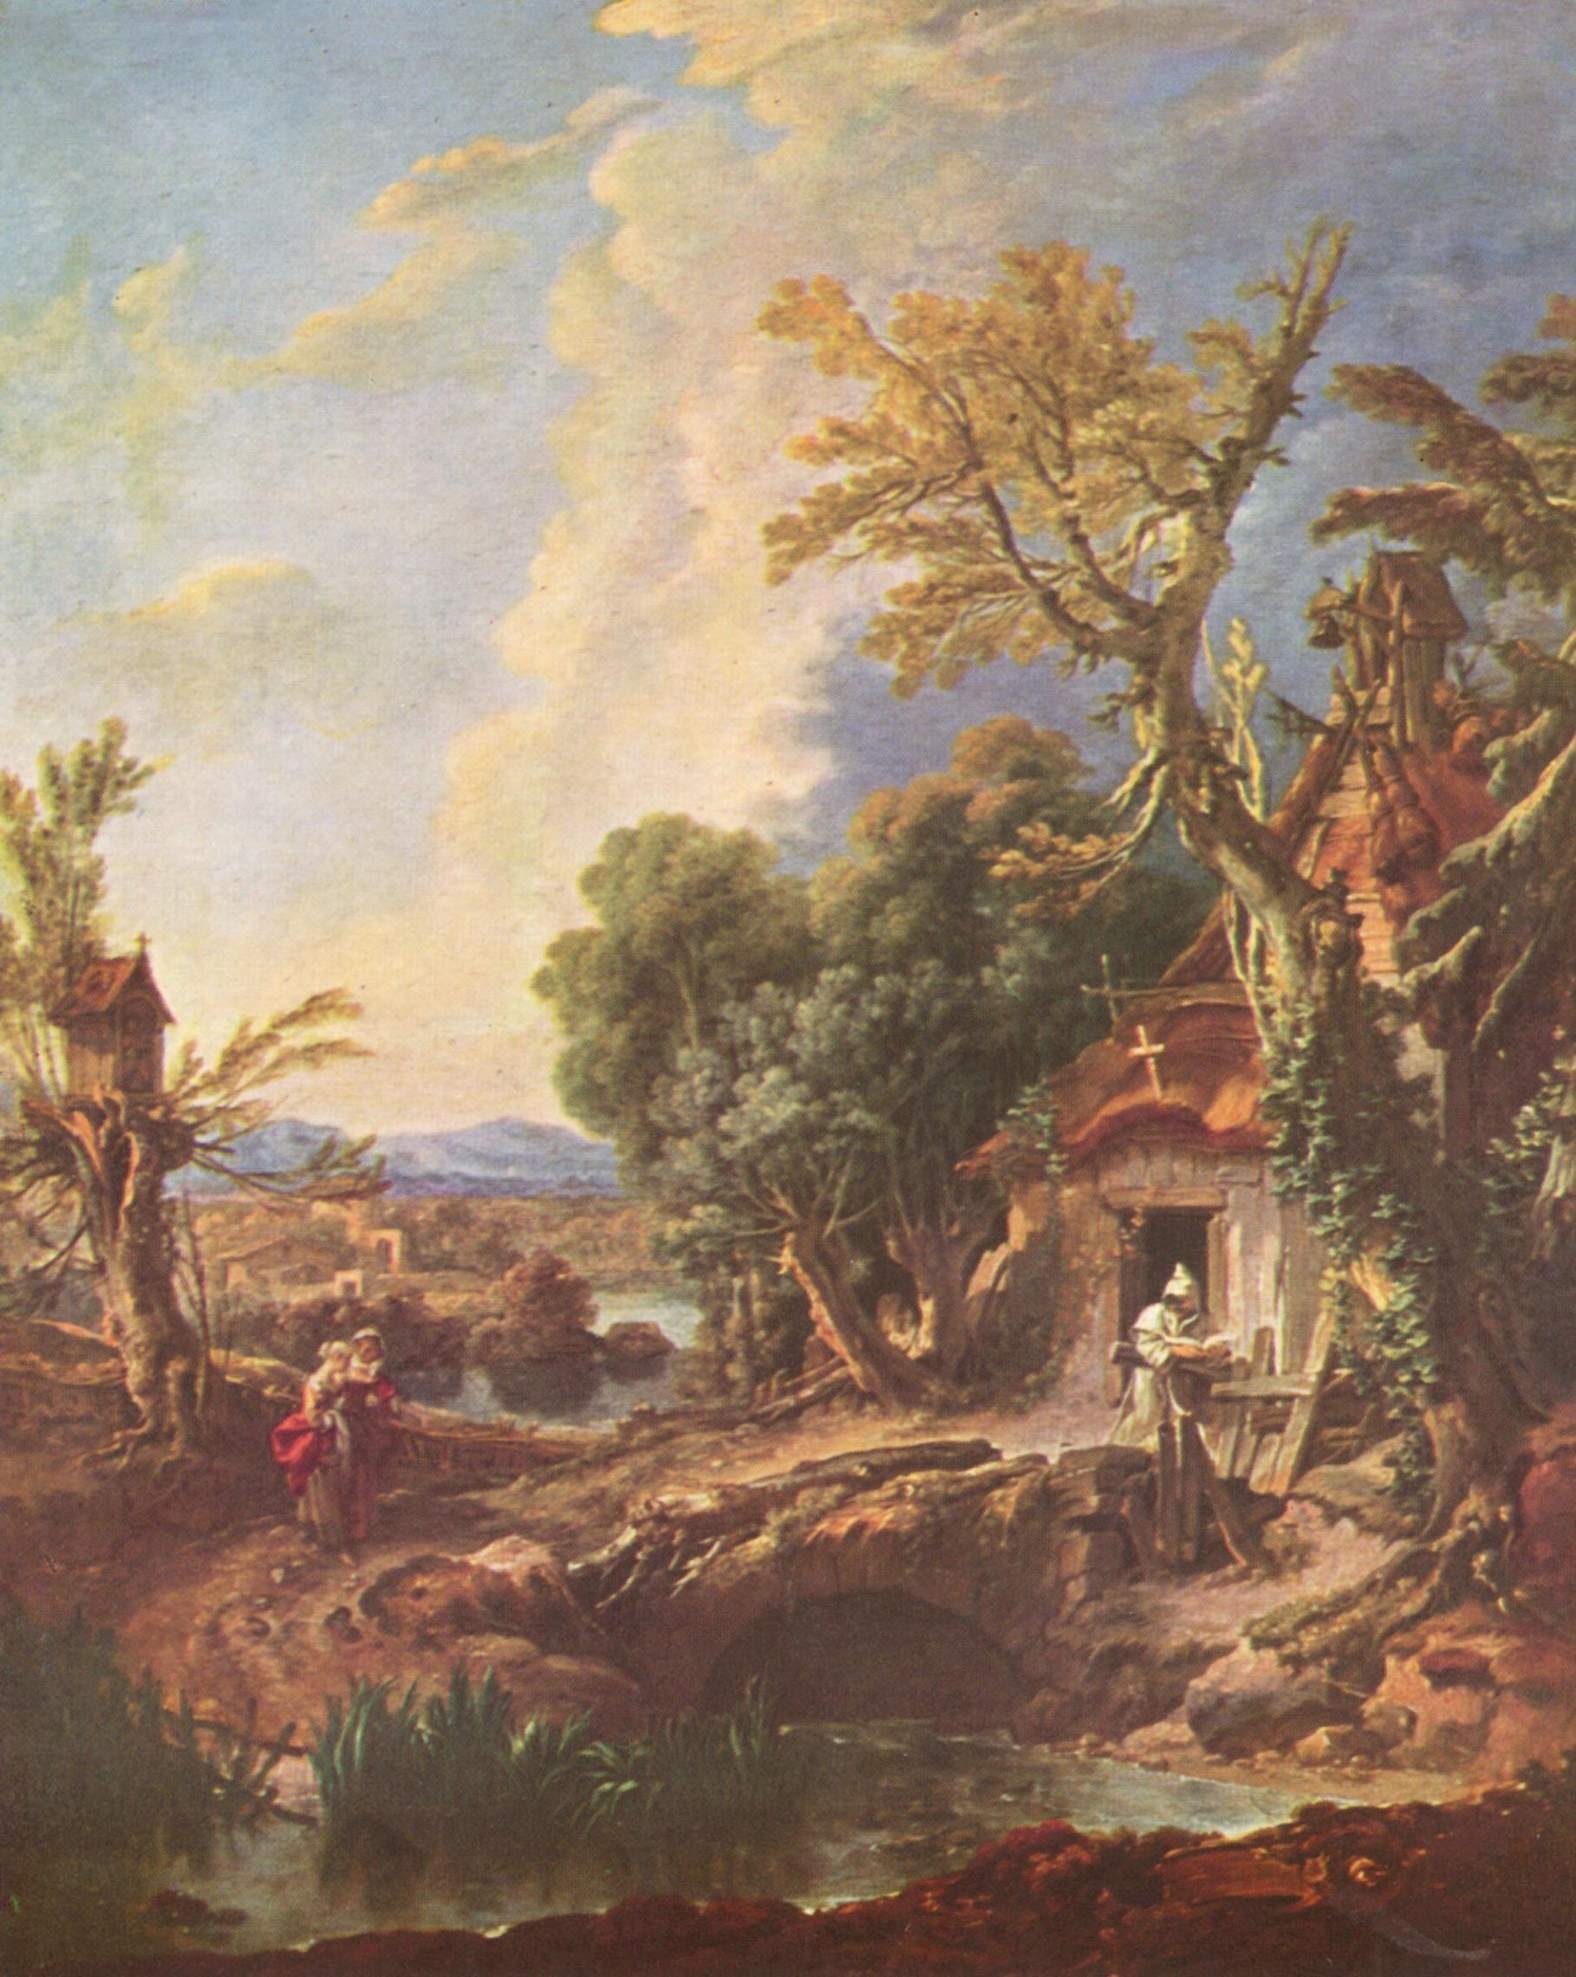 francois boucher Great artists of the western world: the french rococo: antoine watteau, jbs chardin, francois boucher, jh fragonard by clive lyon, sue (editors) gregory and a great selection of similar used, new and collectible books available now at abebookscom.